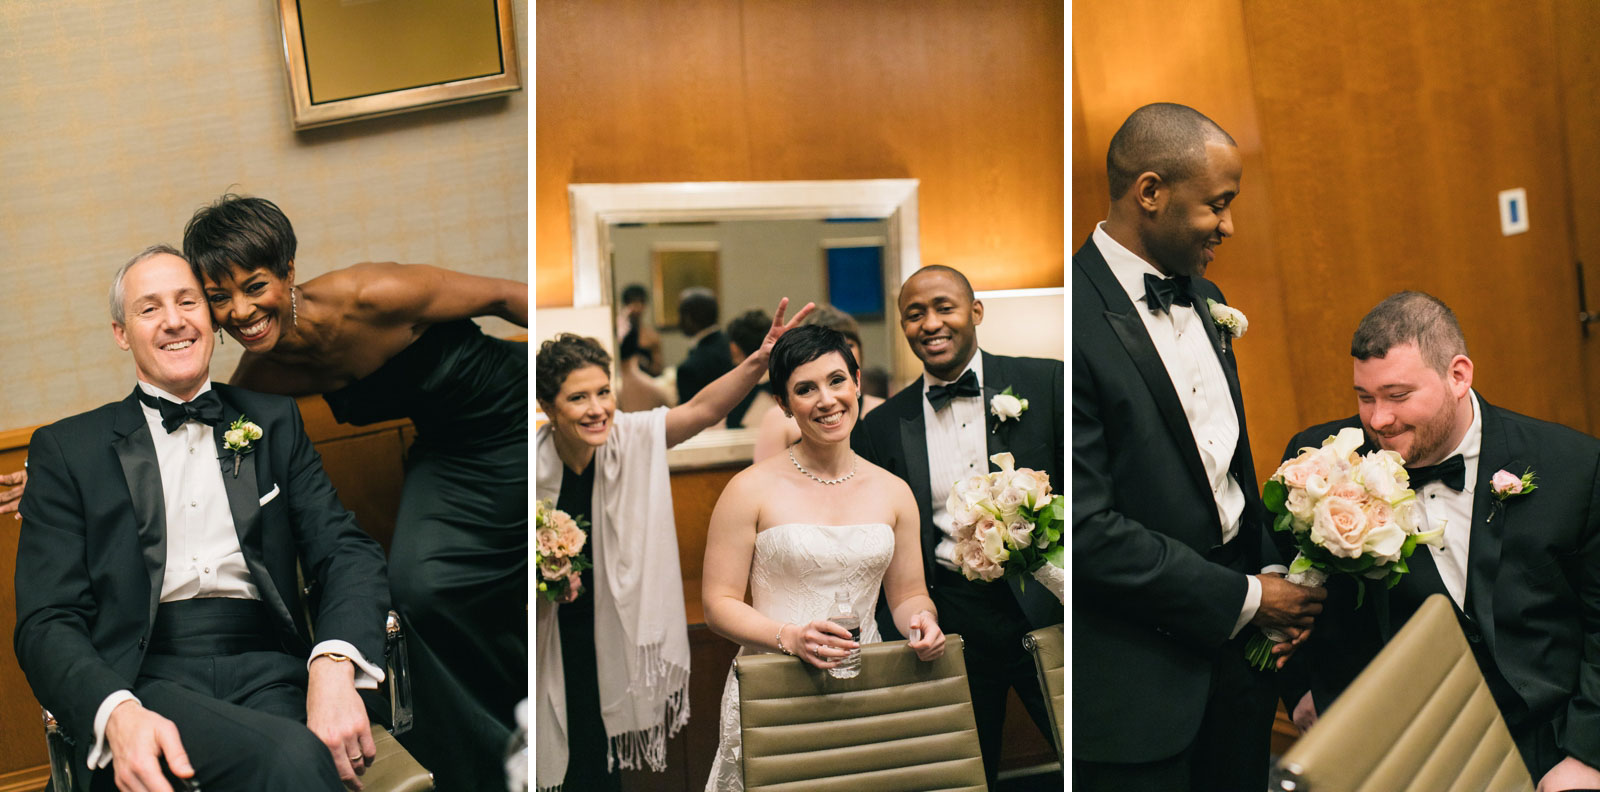 family and bridal party hanging out and having fun before wedding ceremony at Ritz-Carlton Boston